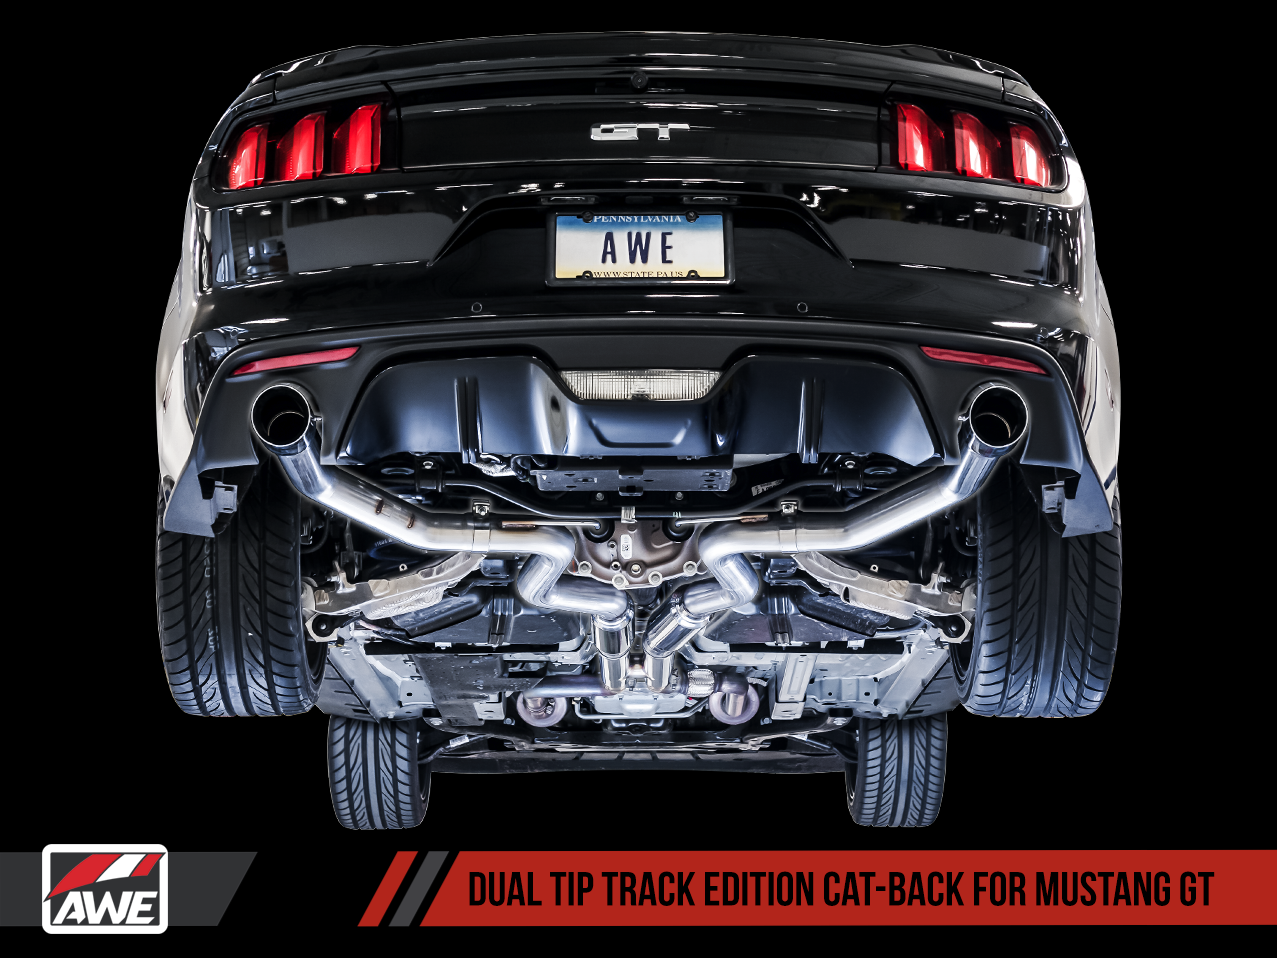 2015-2017 Ford Mustang GT 5.0L V8 AWE Track Edition Catback Exhaust System w/Black Diamond Tips